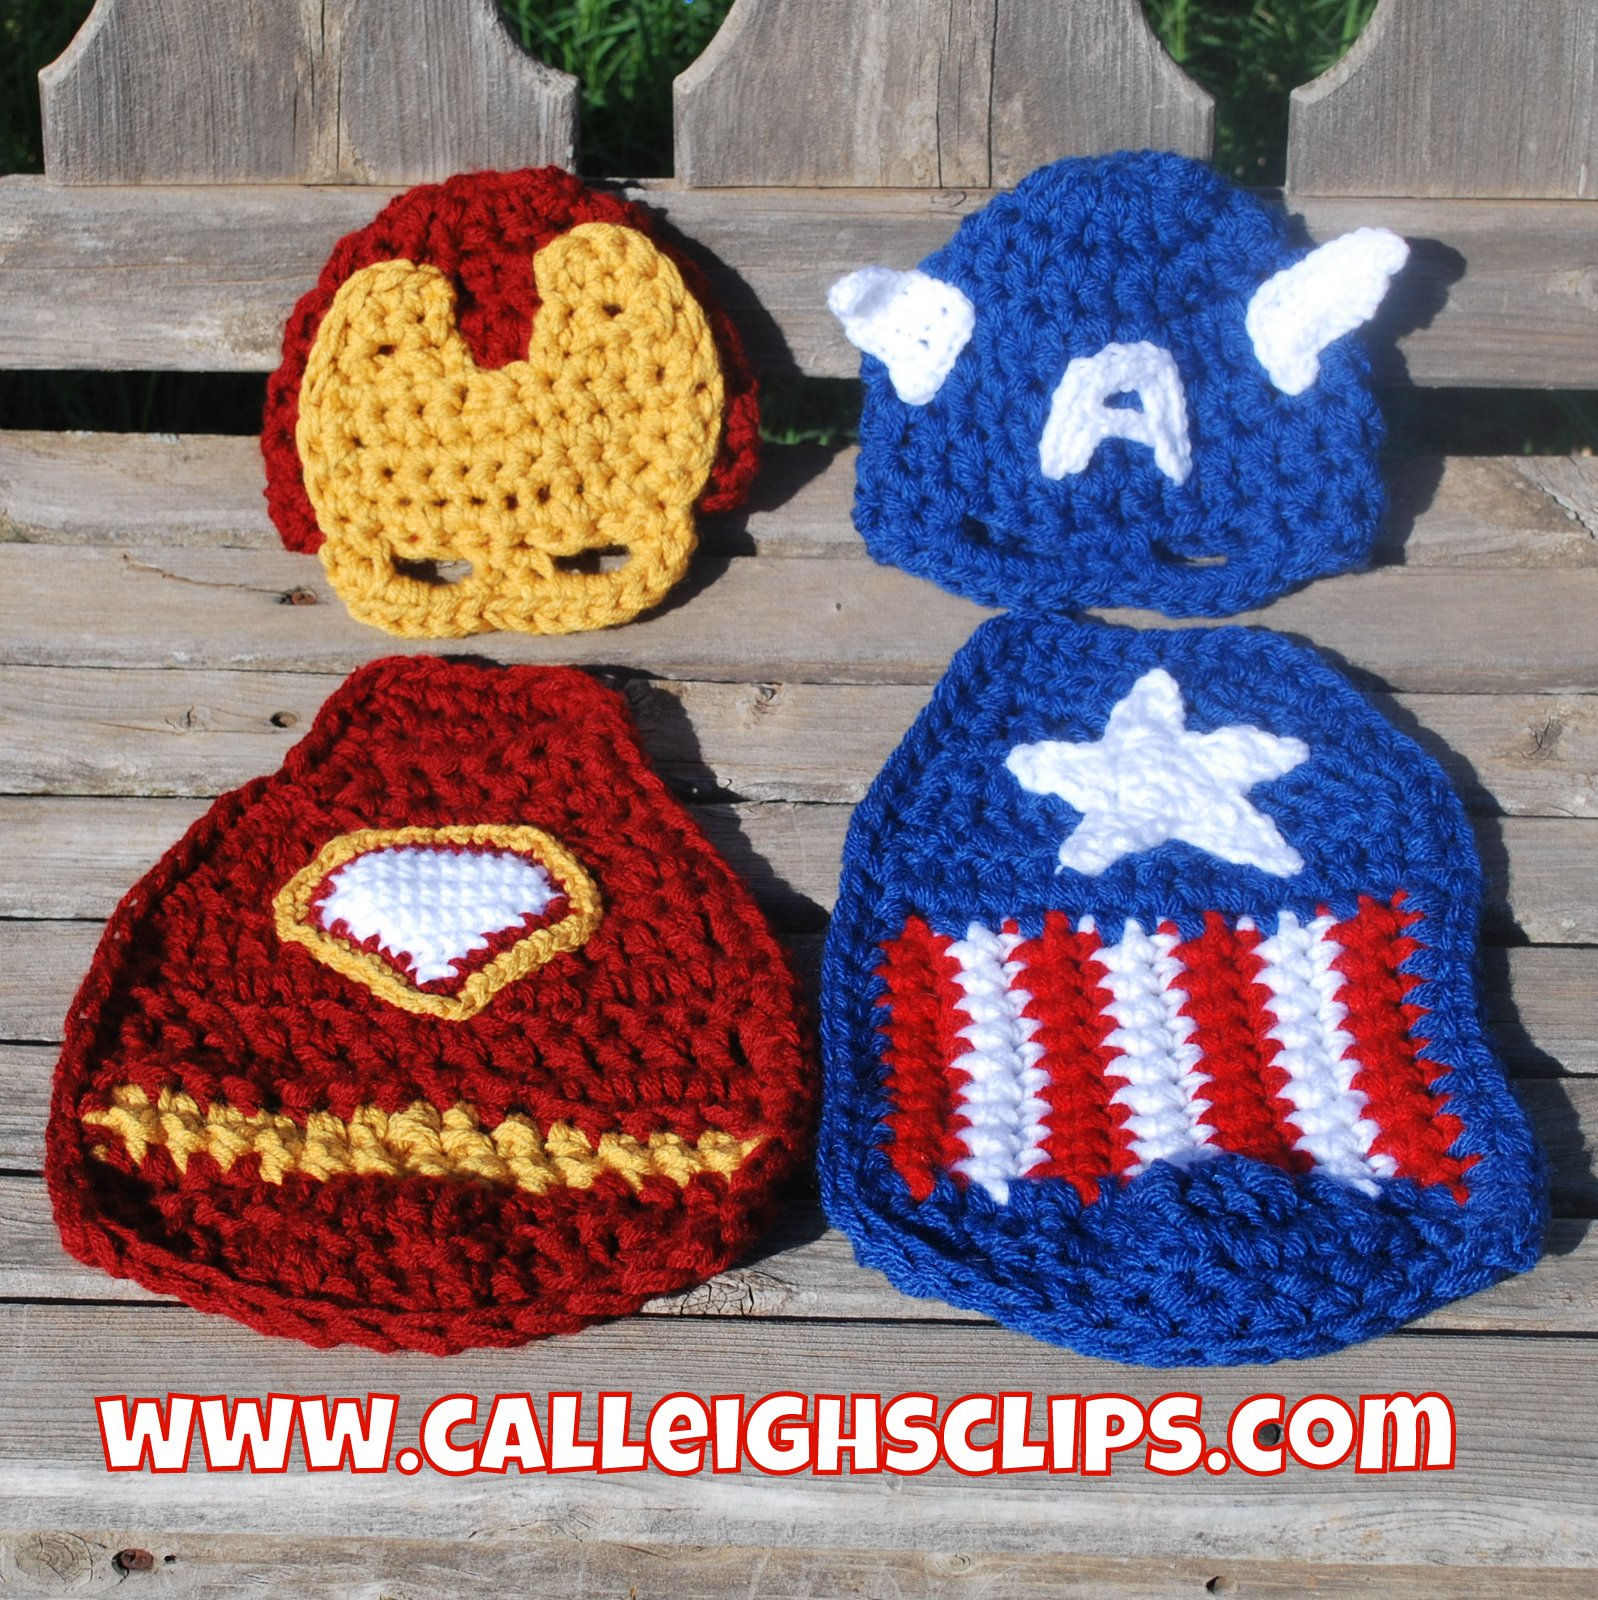 Calleighs Clips Crochet Creations American Crusader Cuddle Cape